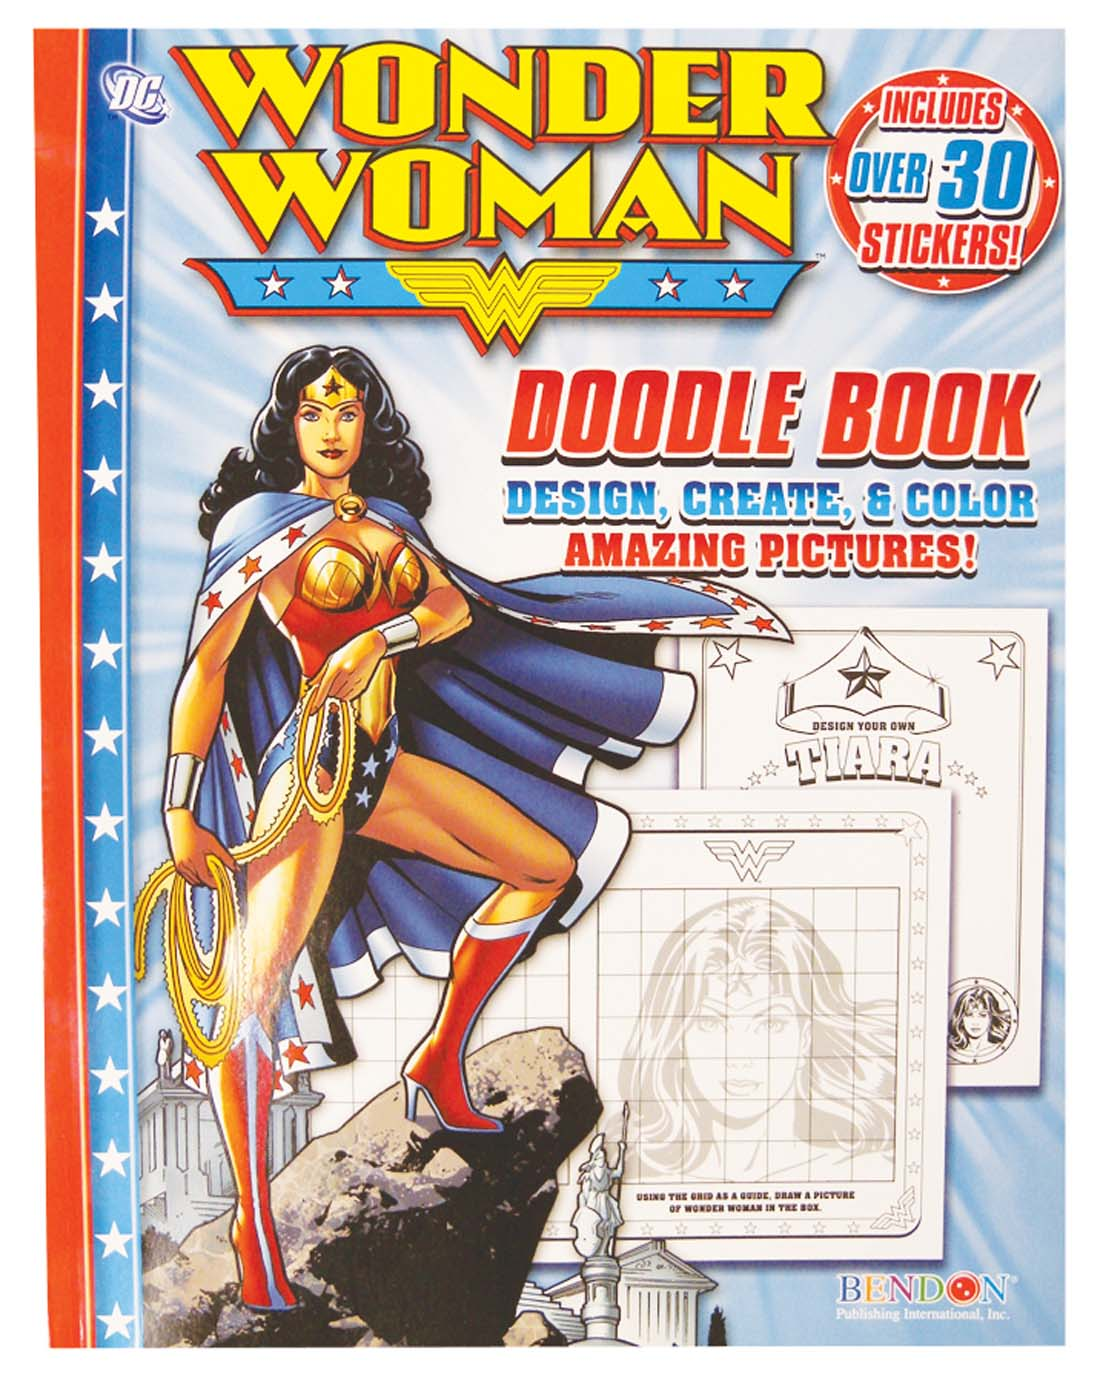 View WONDER WOMAN DOODLE BOOK 66 PAGES WITH STICKERS PREPRICED $2.99